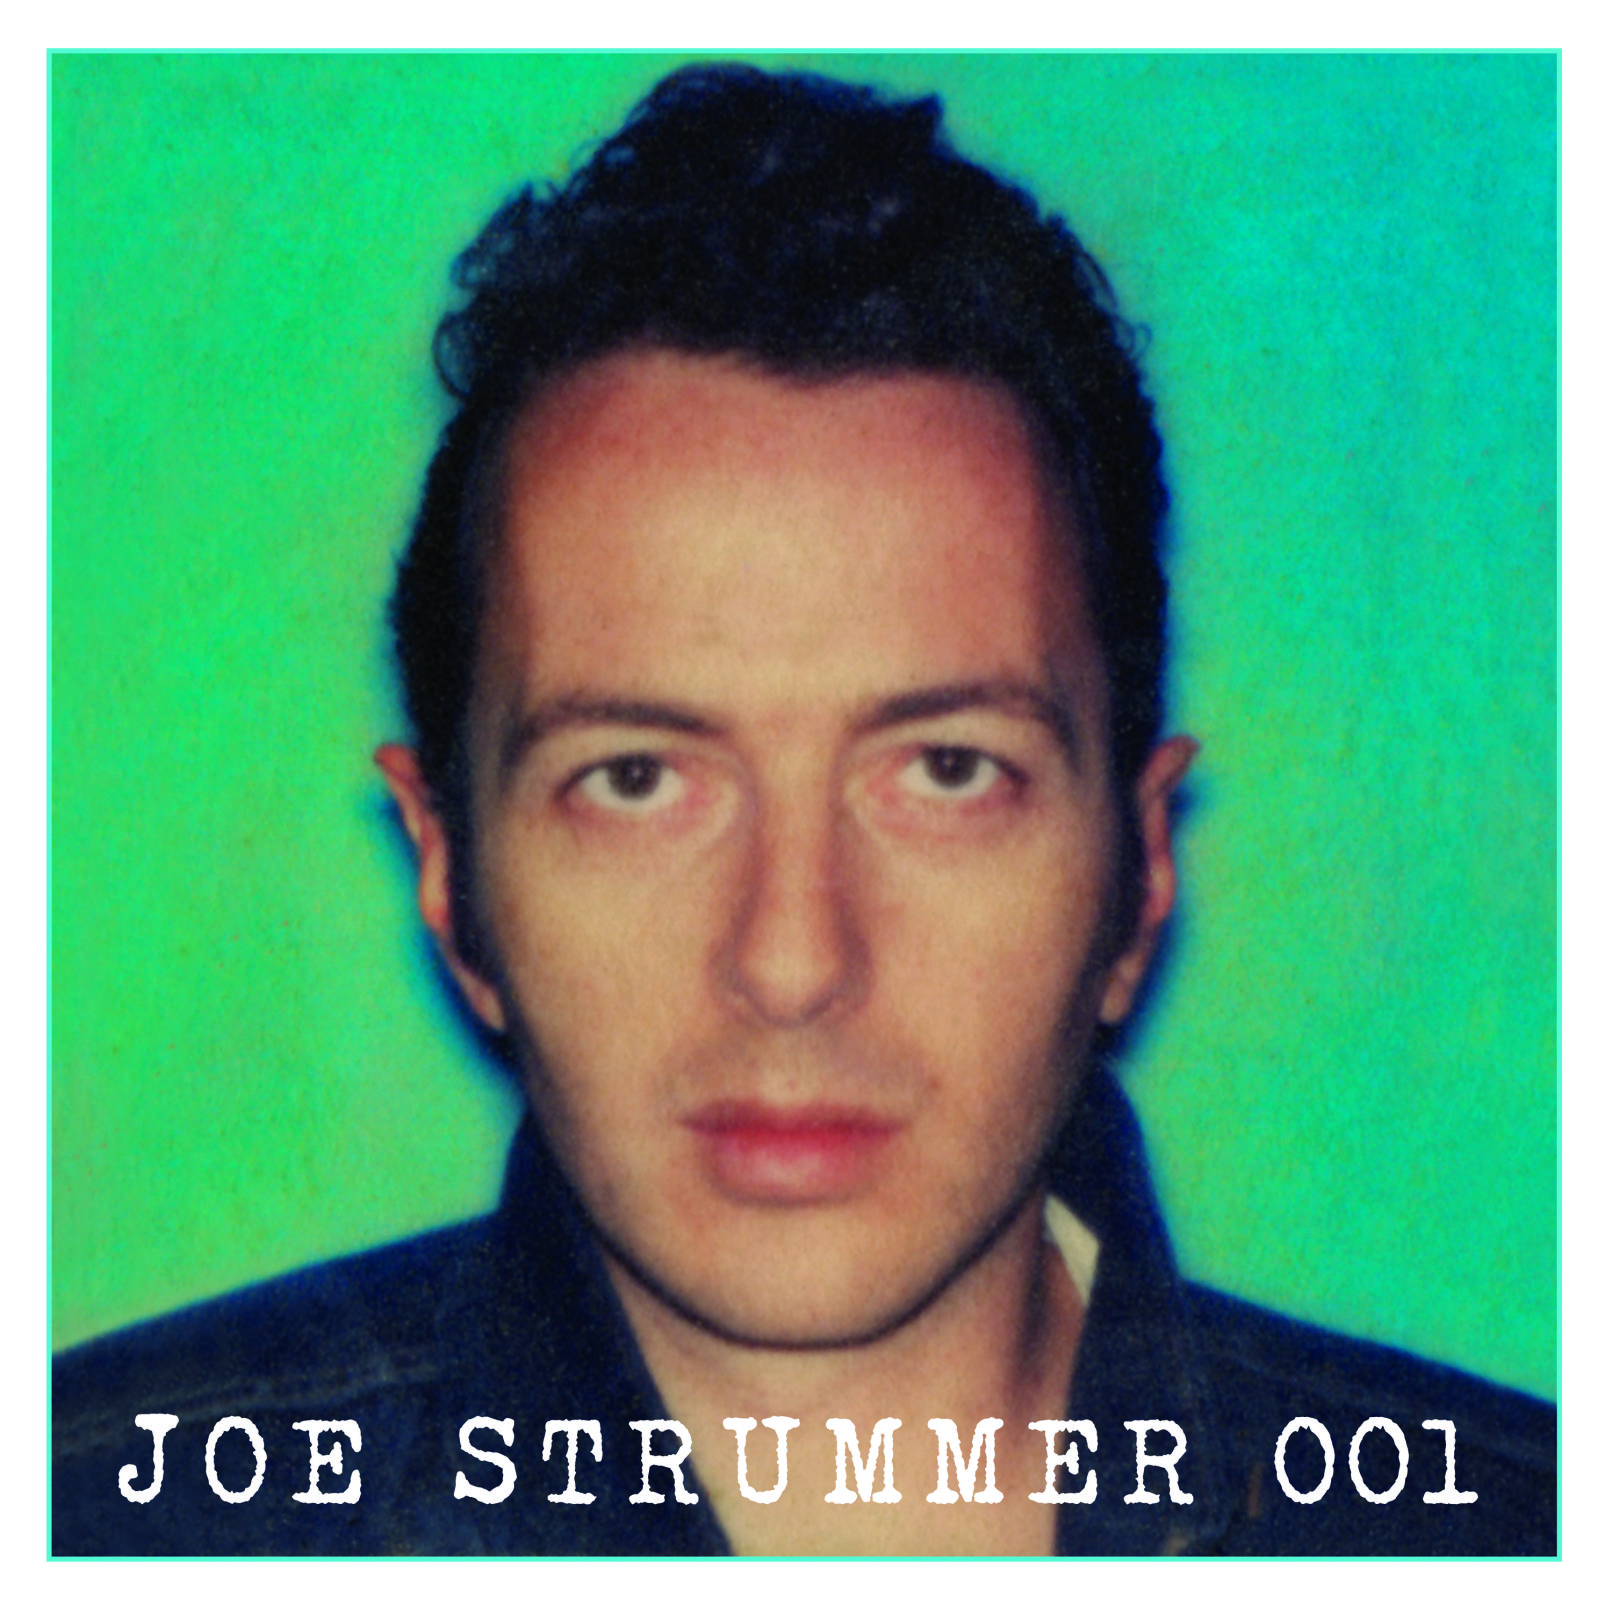 News – Joe Strummer – Joe Strummer 001